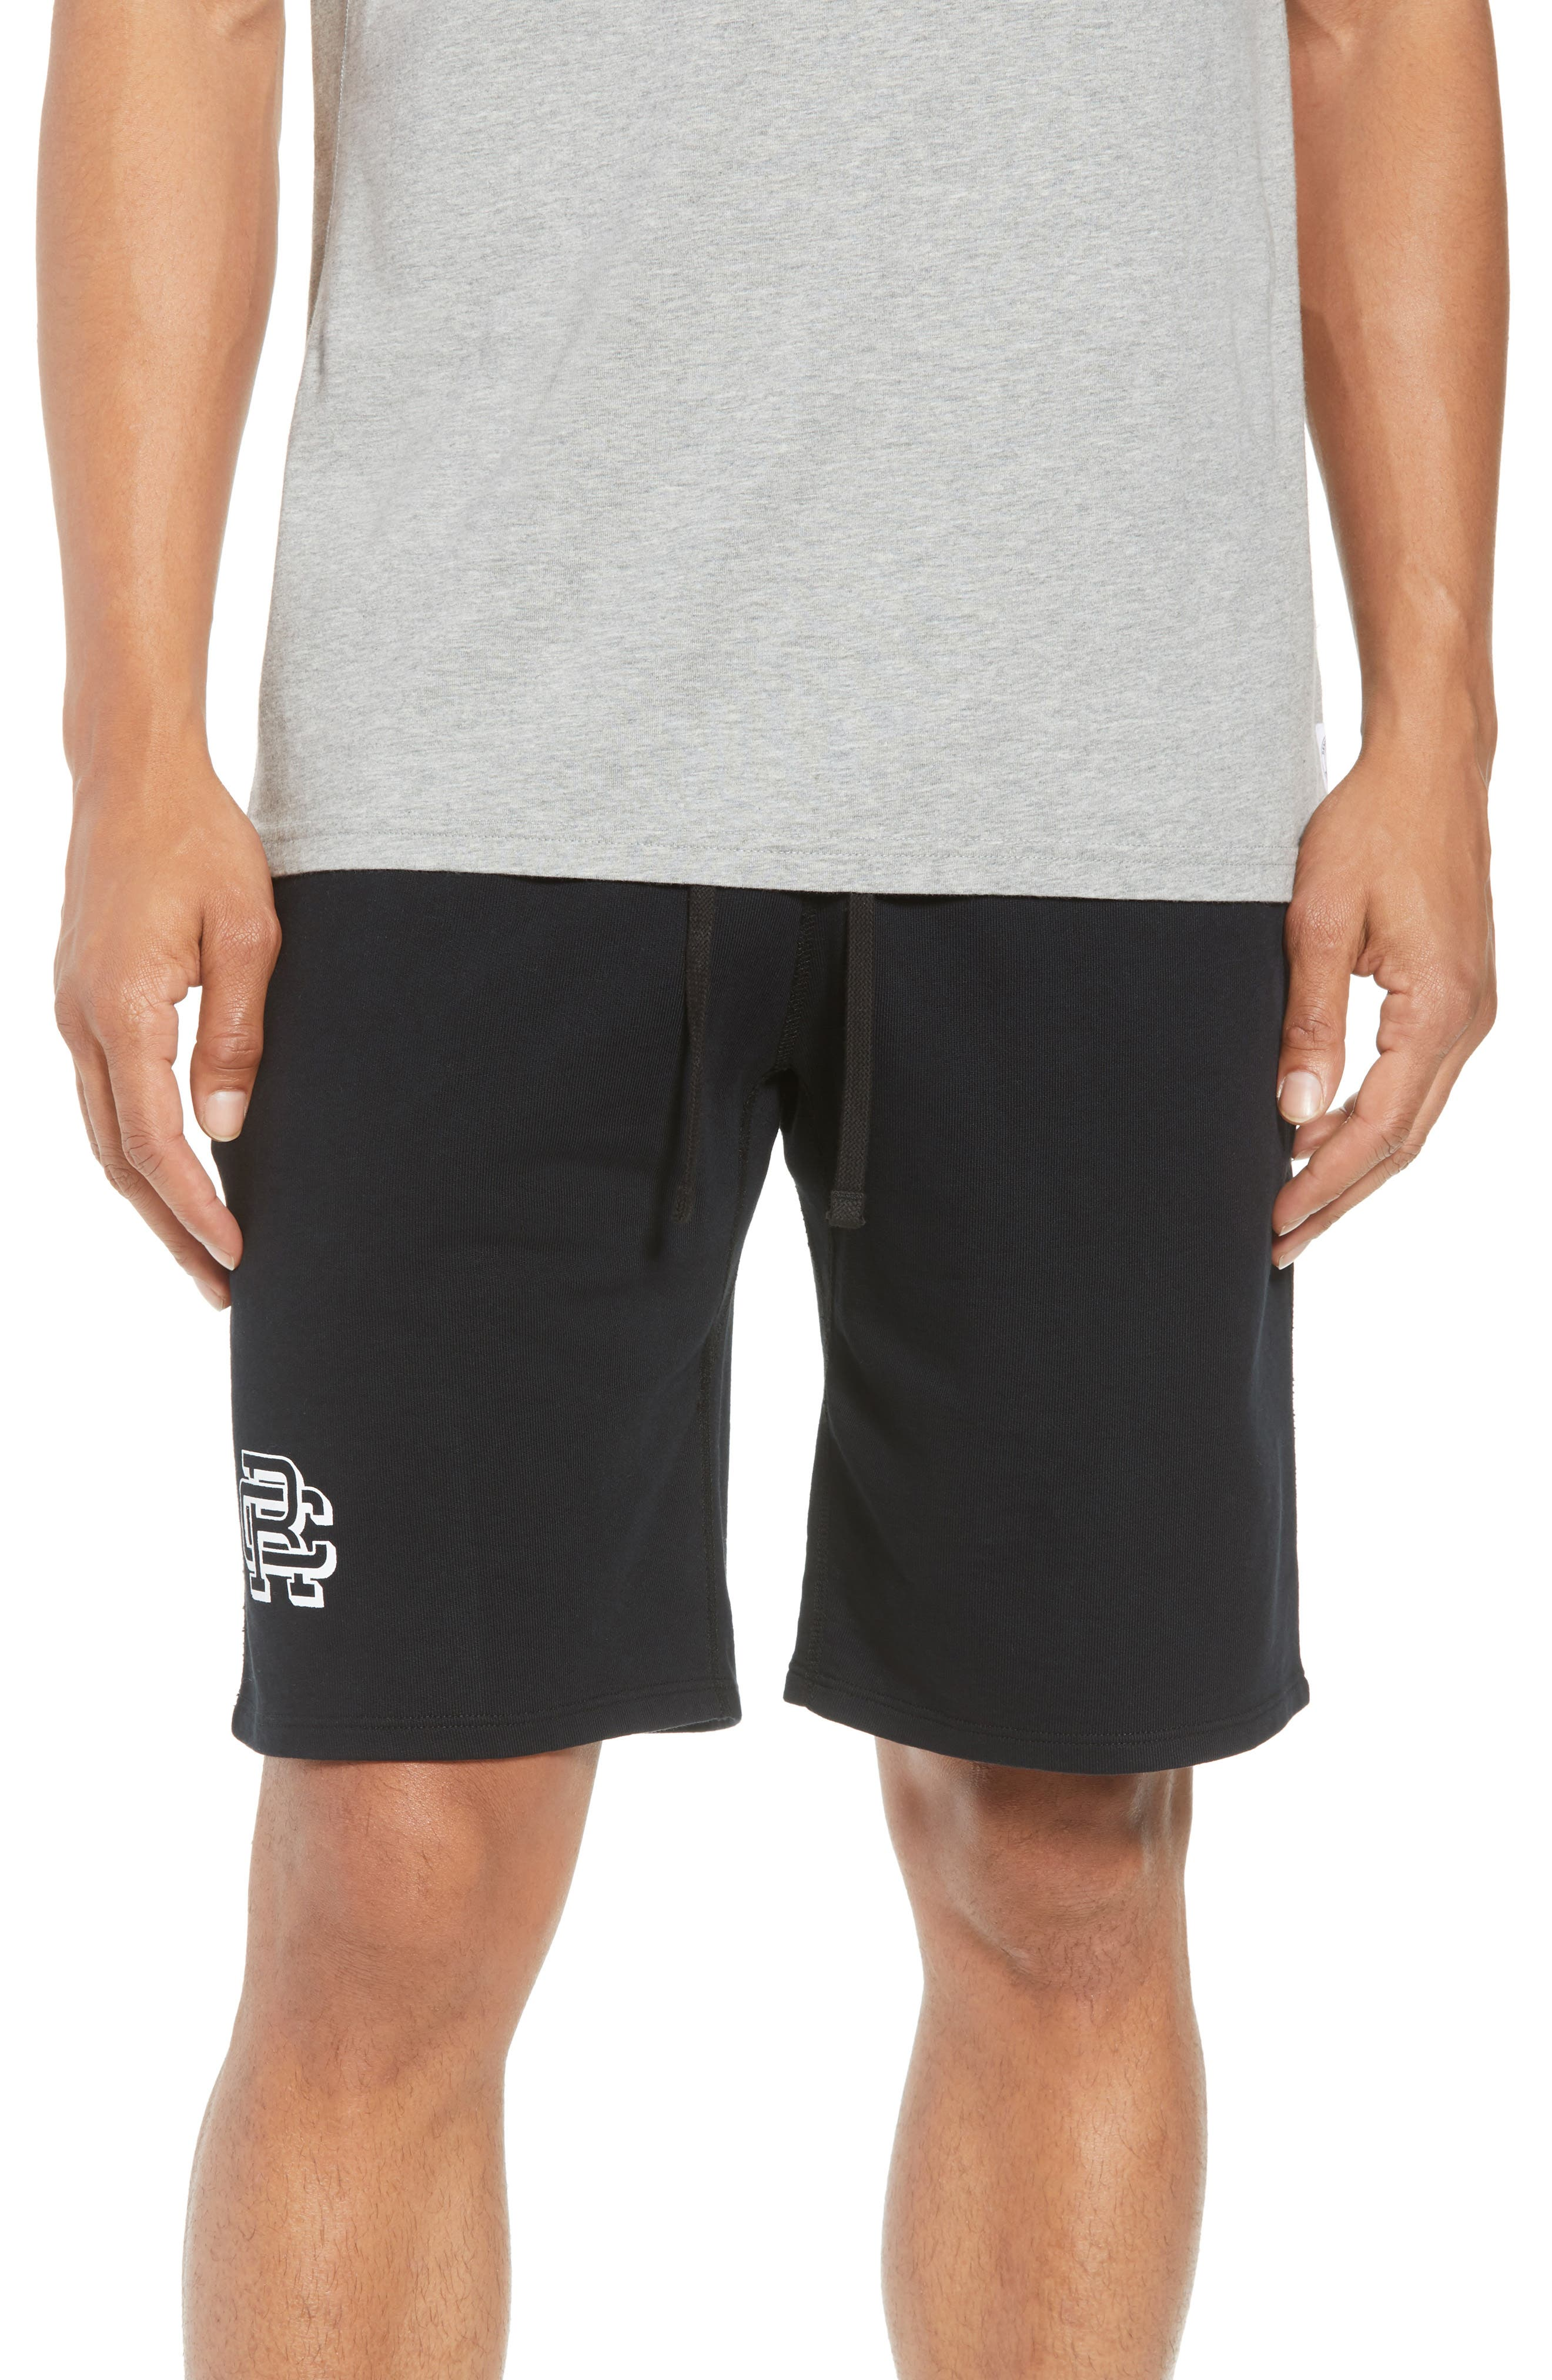 Shorts Lightweight Classic Fit Knit Shorts,                         Main,                         color, BLACK